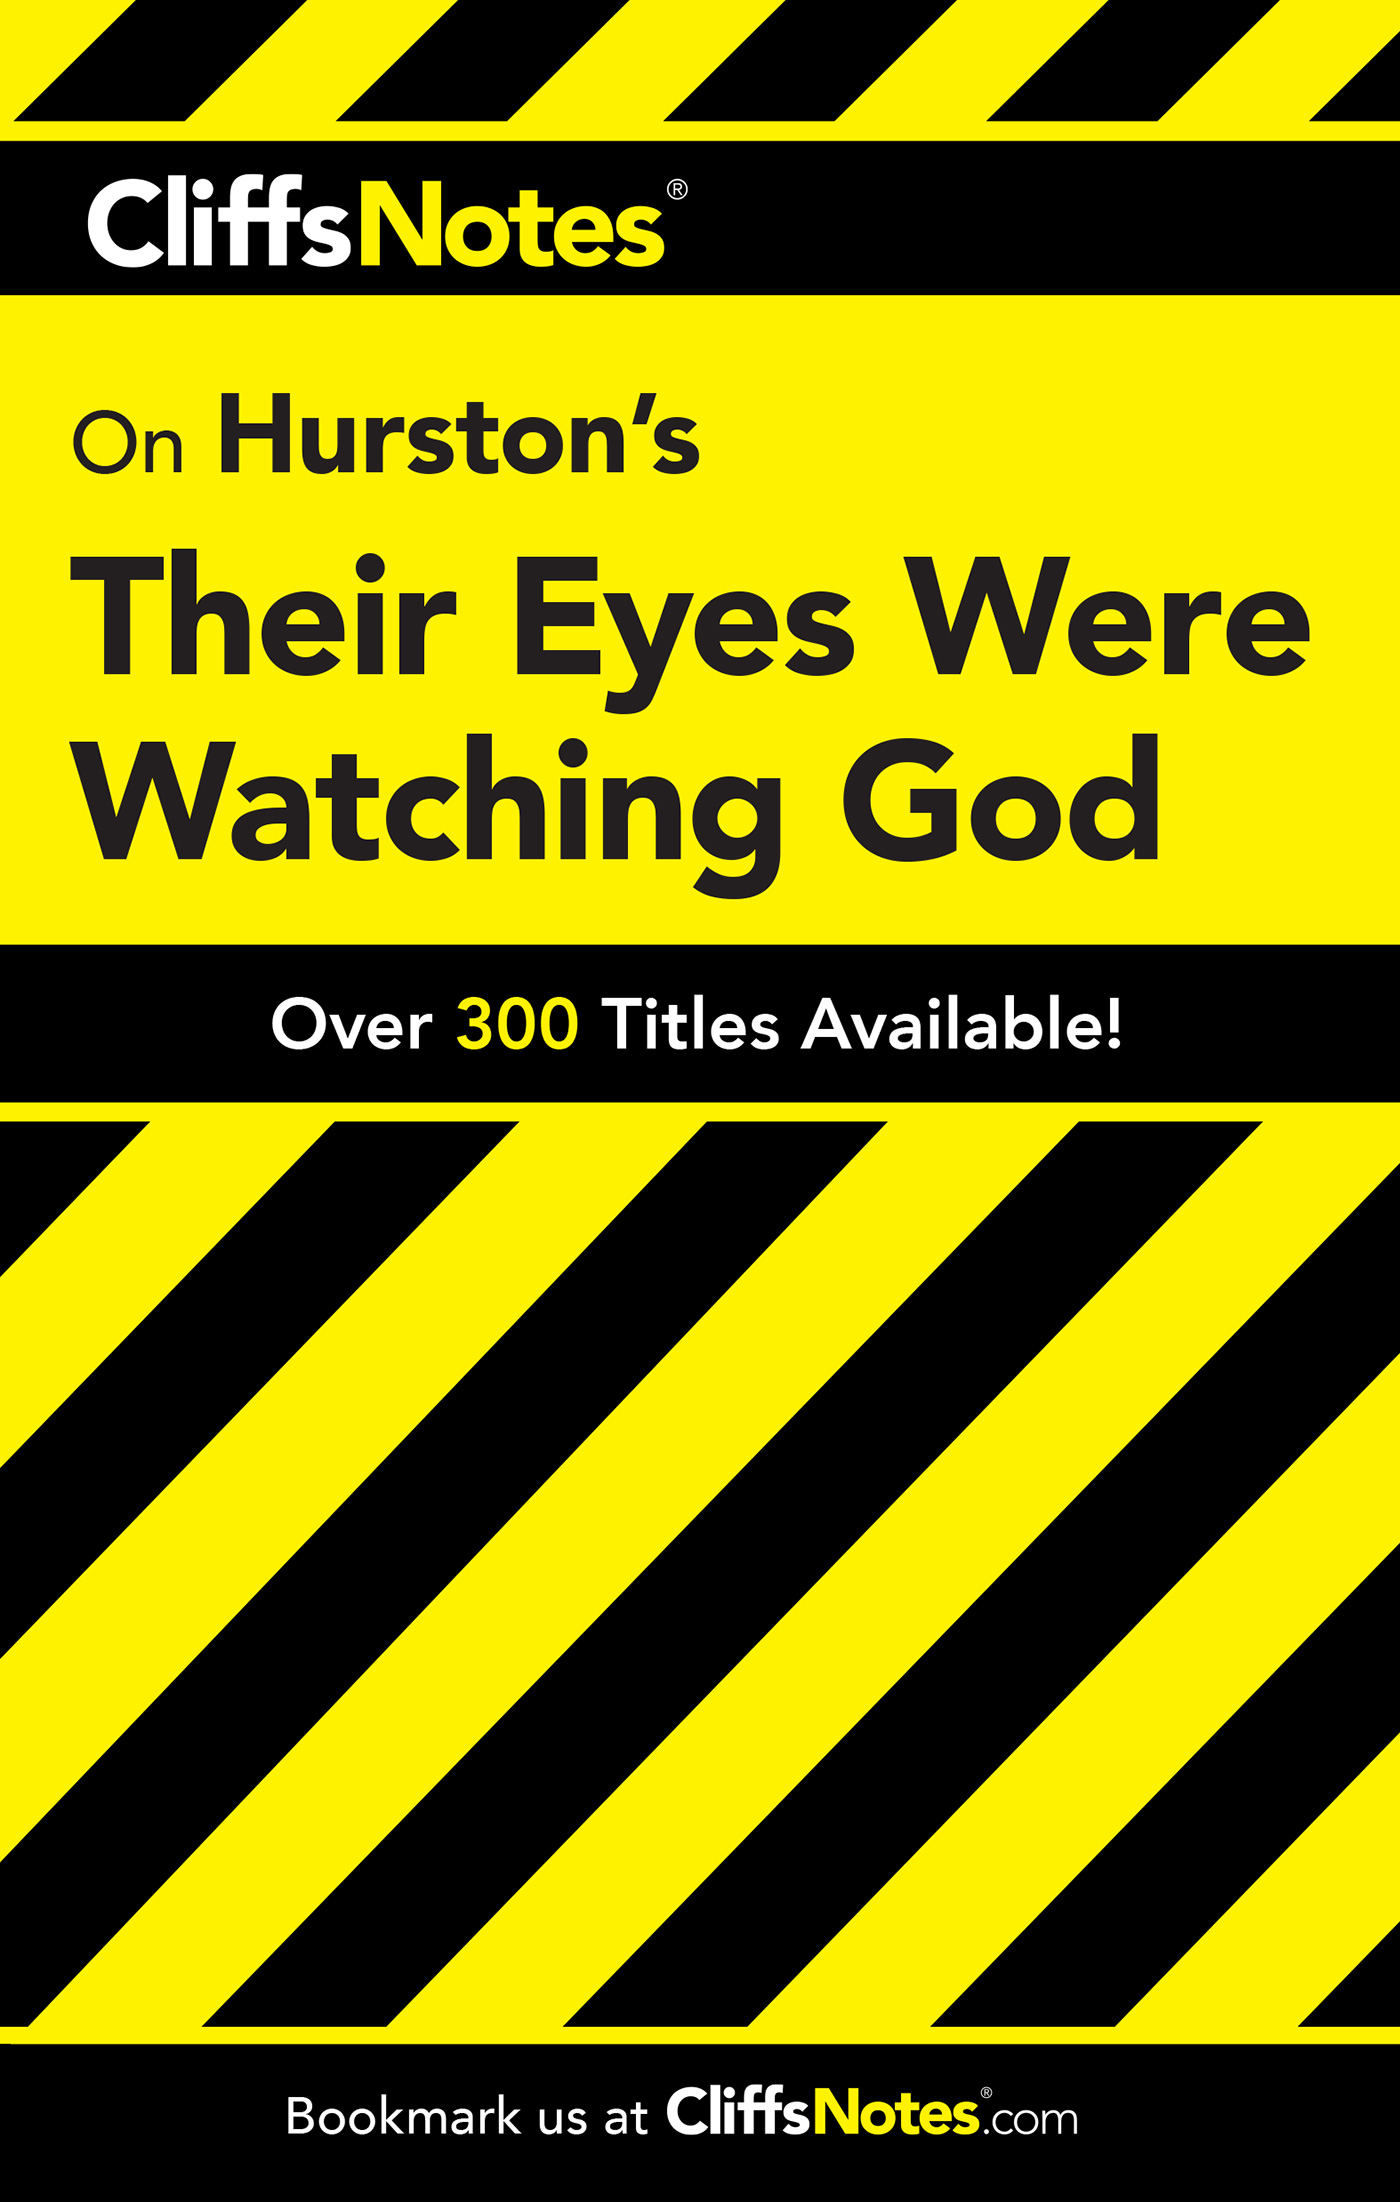 CliffsNotes on Hurston's Their Eyes Were Watching God-9780764586613